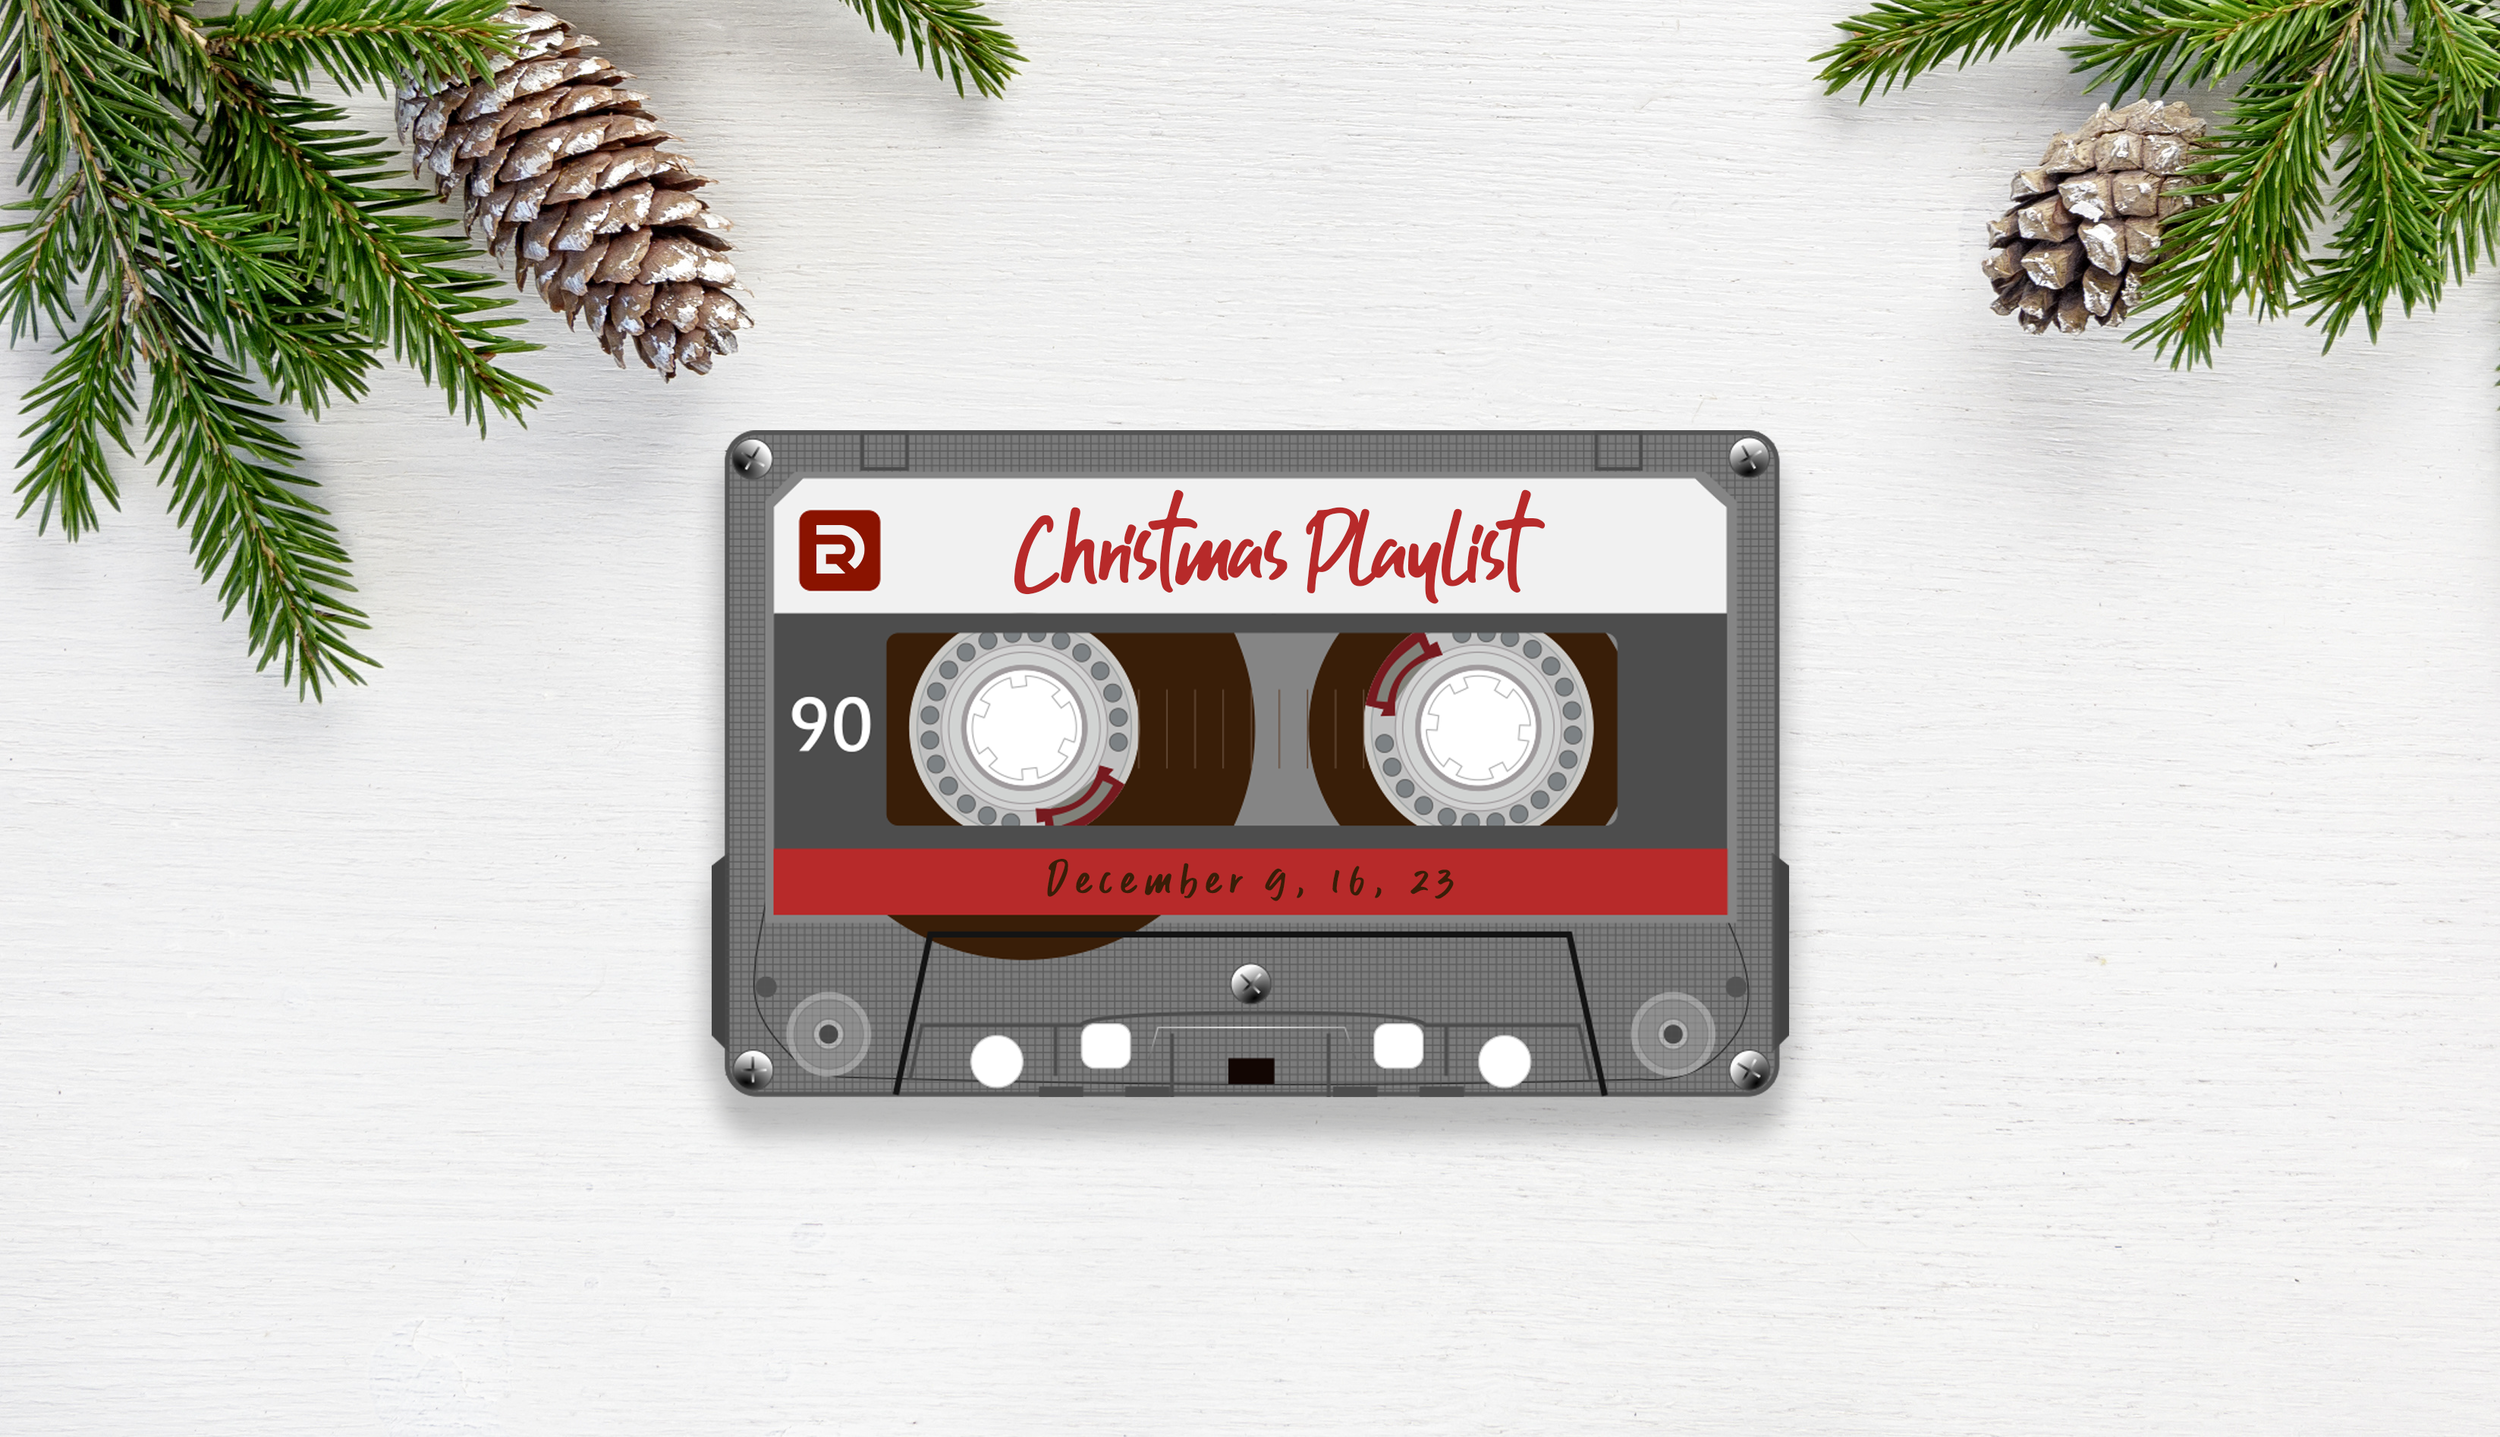 ChristmasPlaylist-theme.png